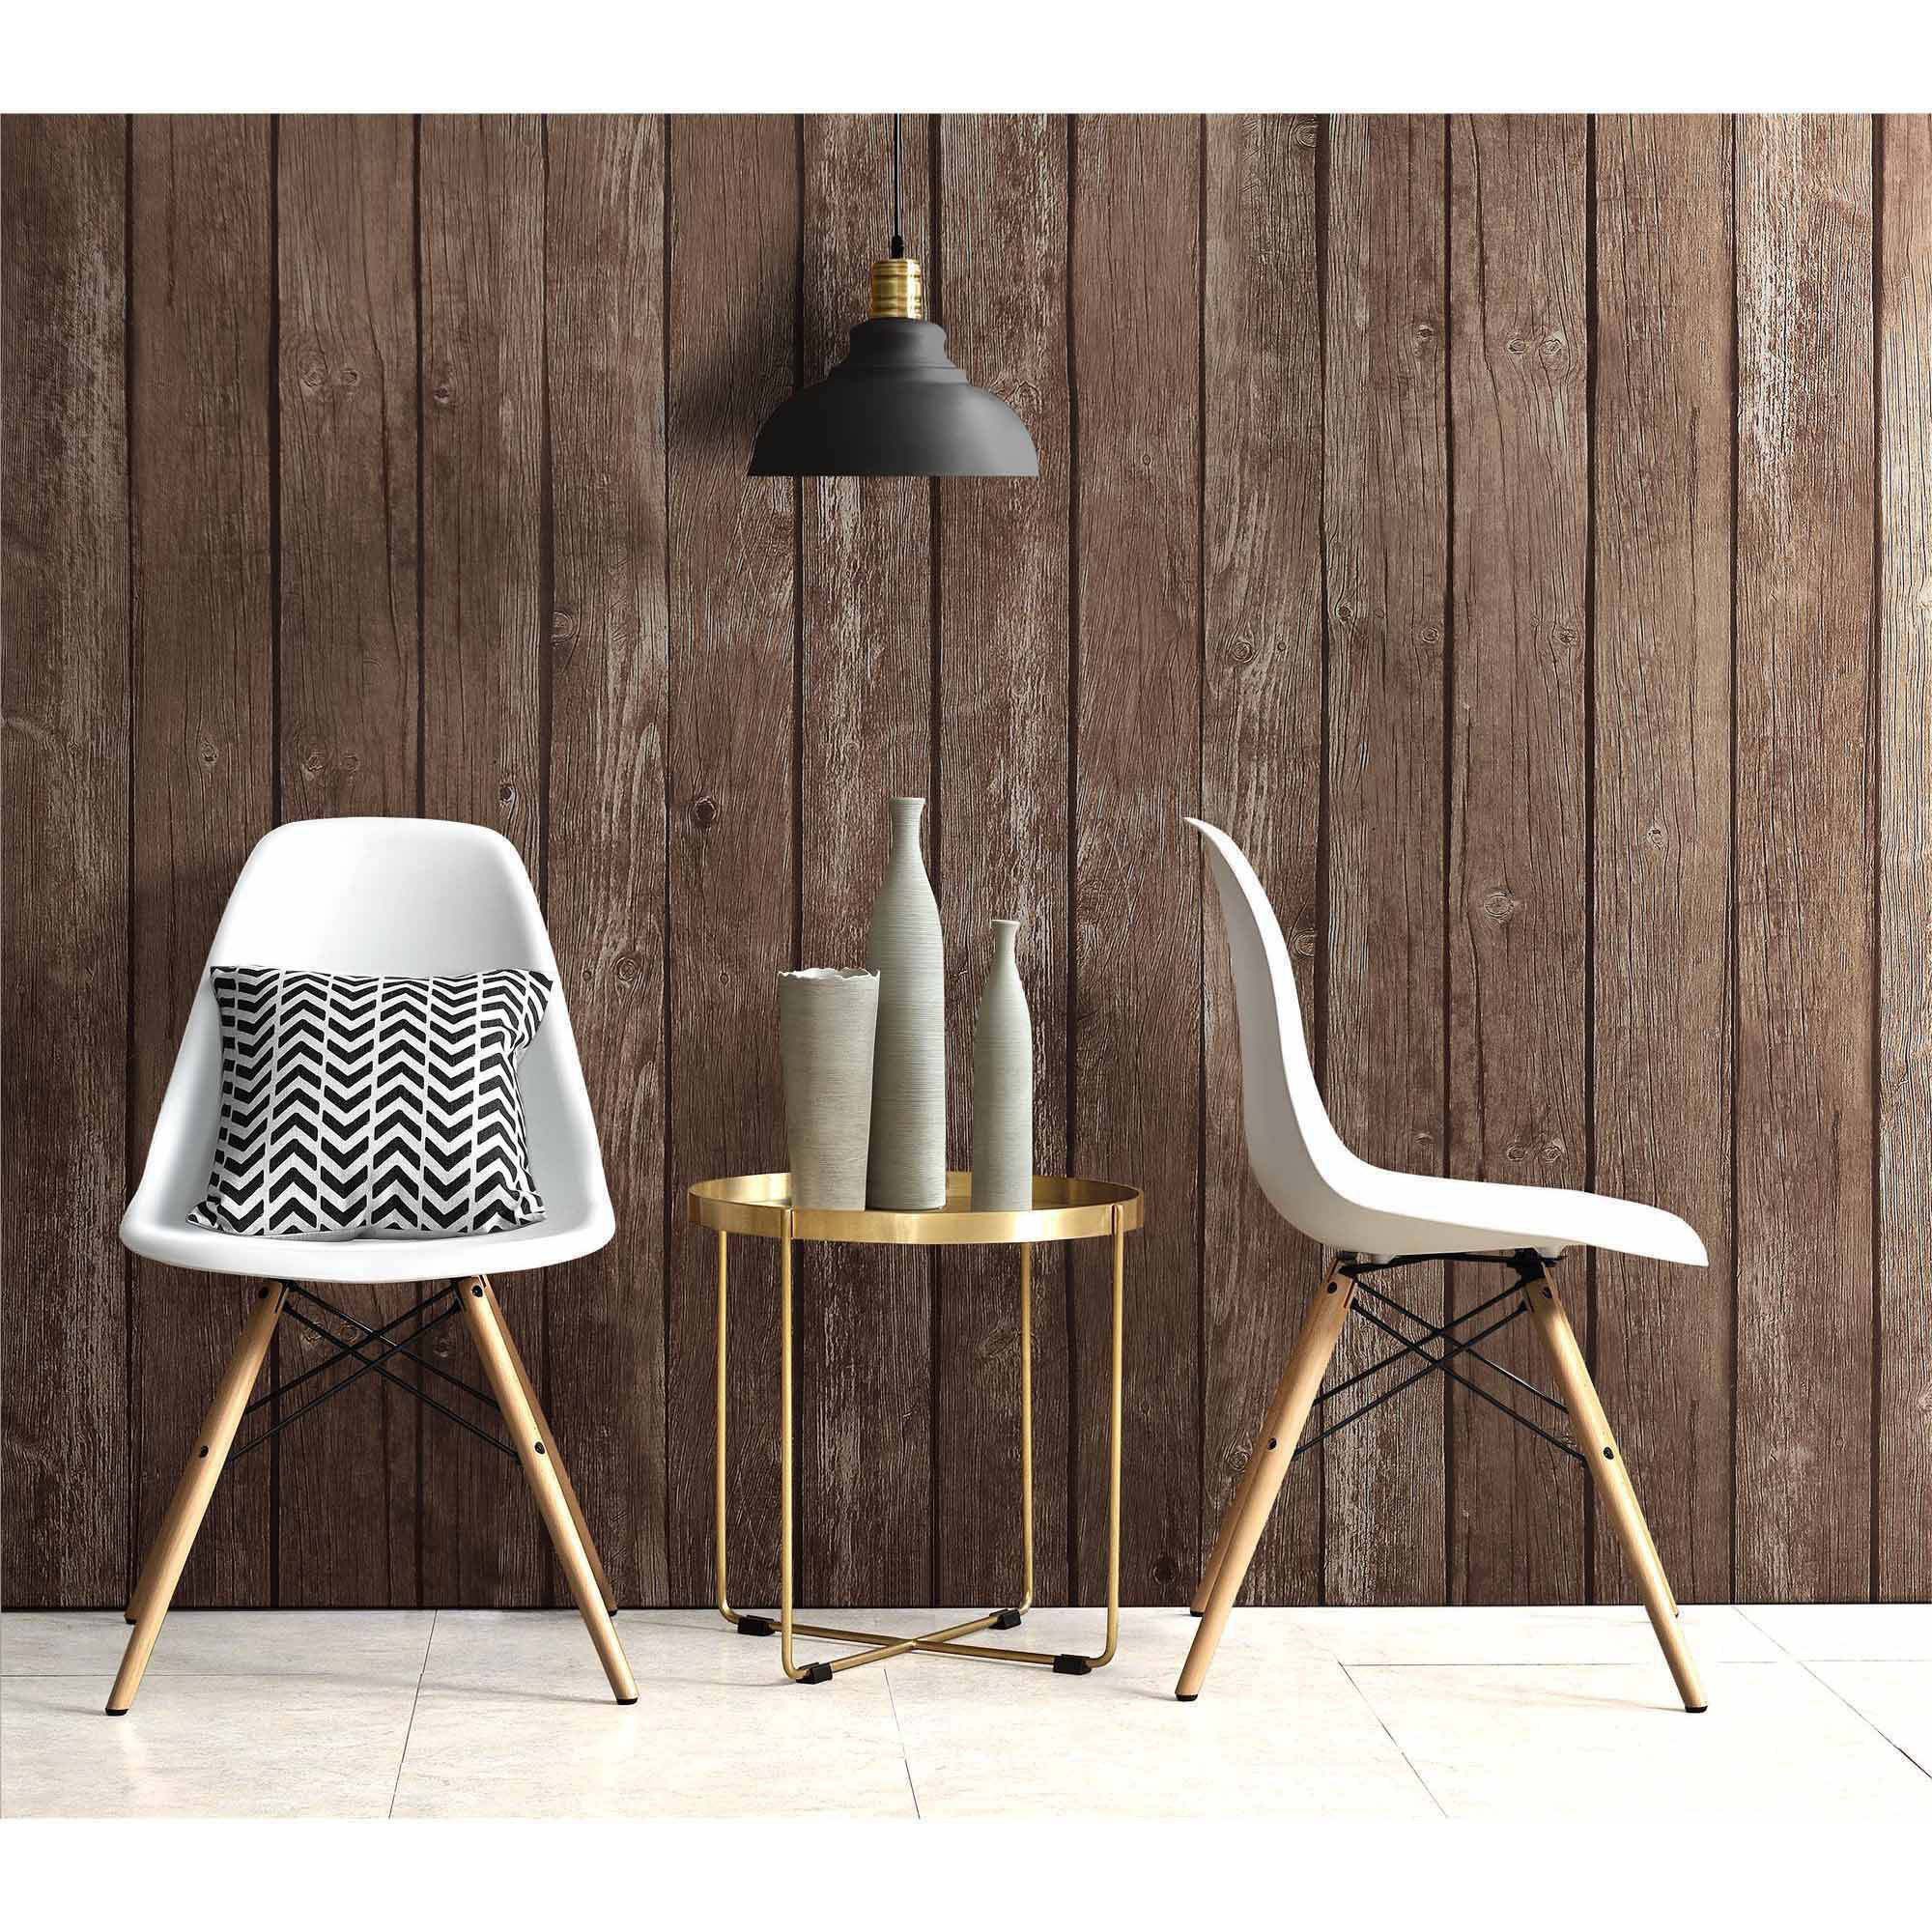 dhp mid century modern molded chair with wood leg set of 2 white